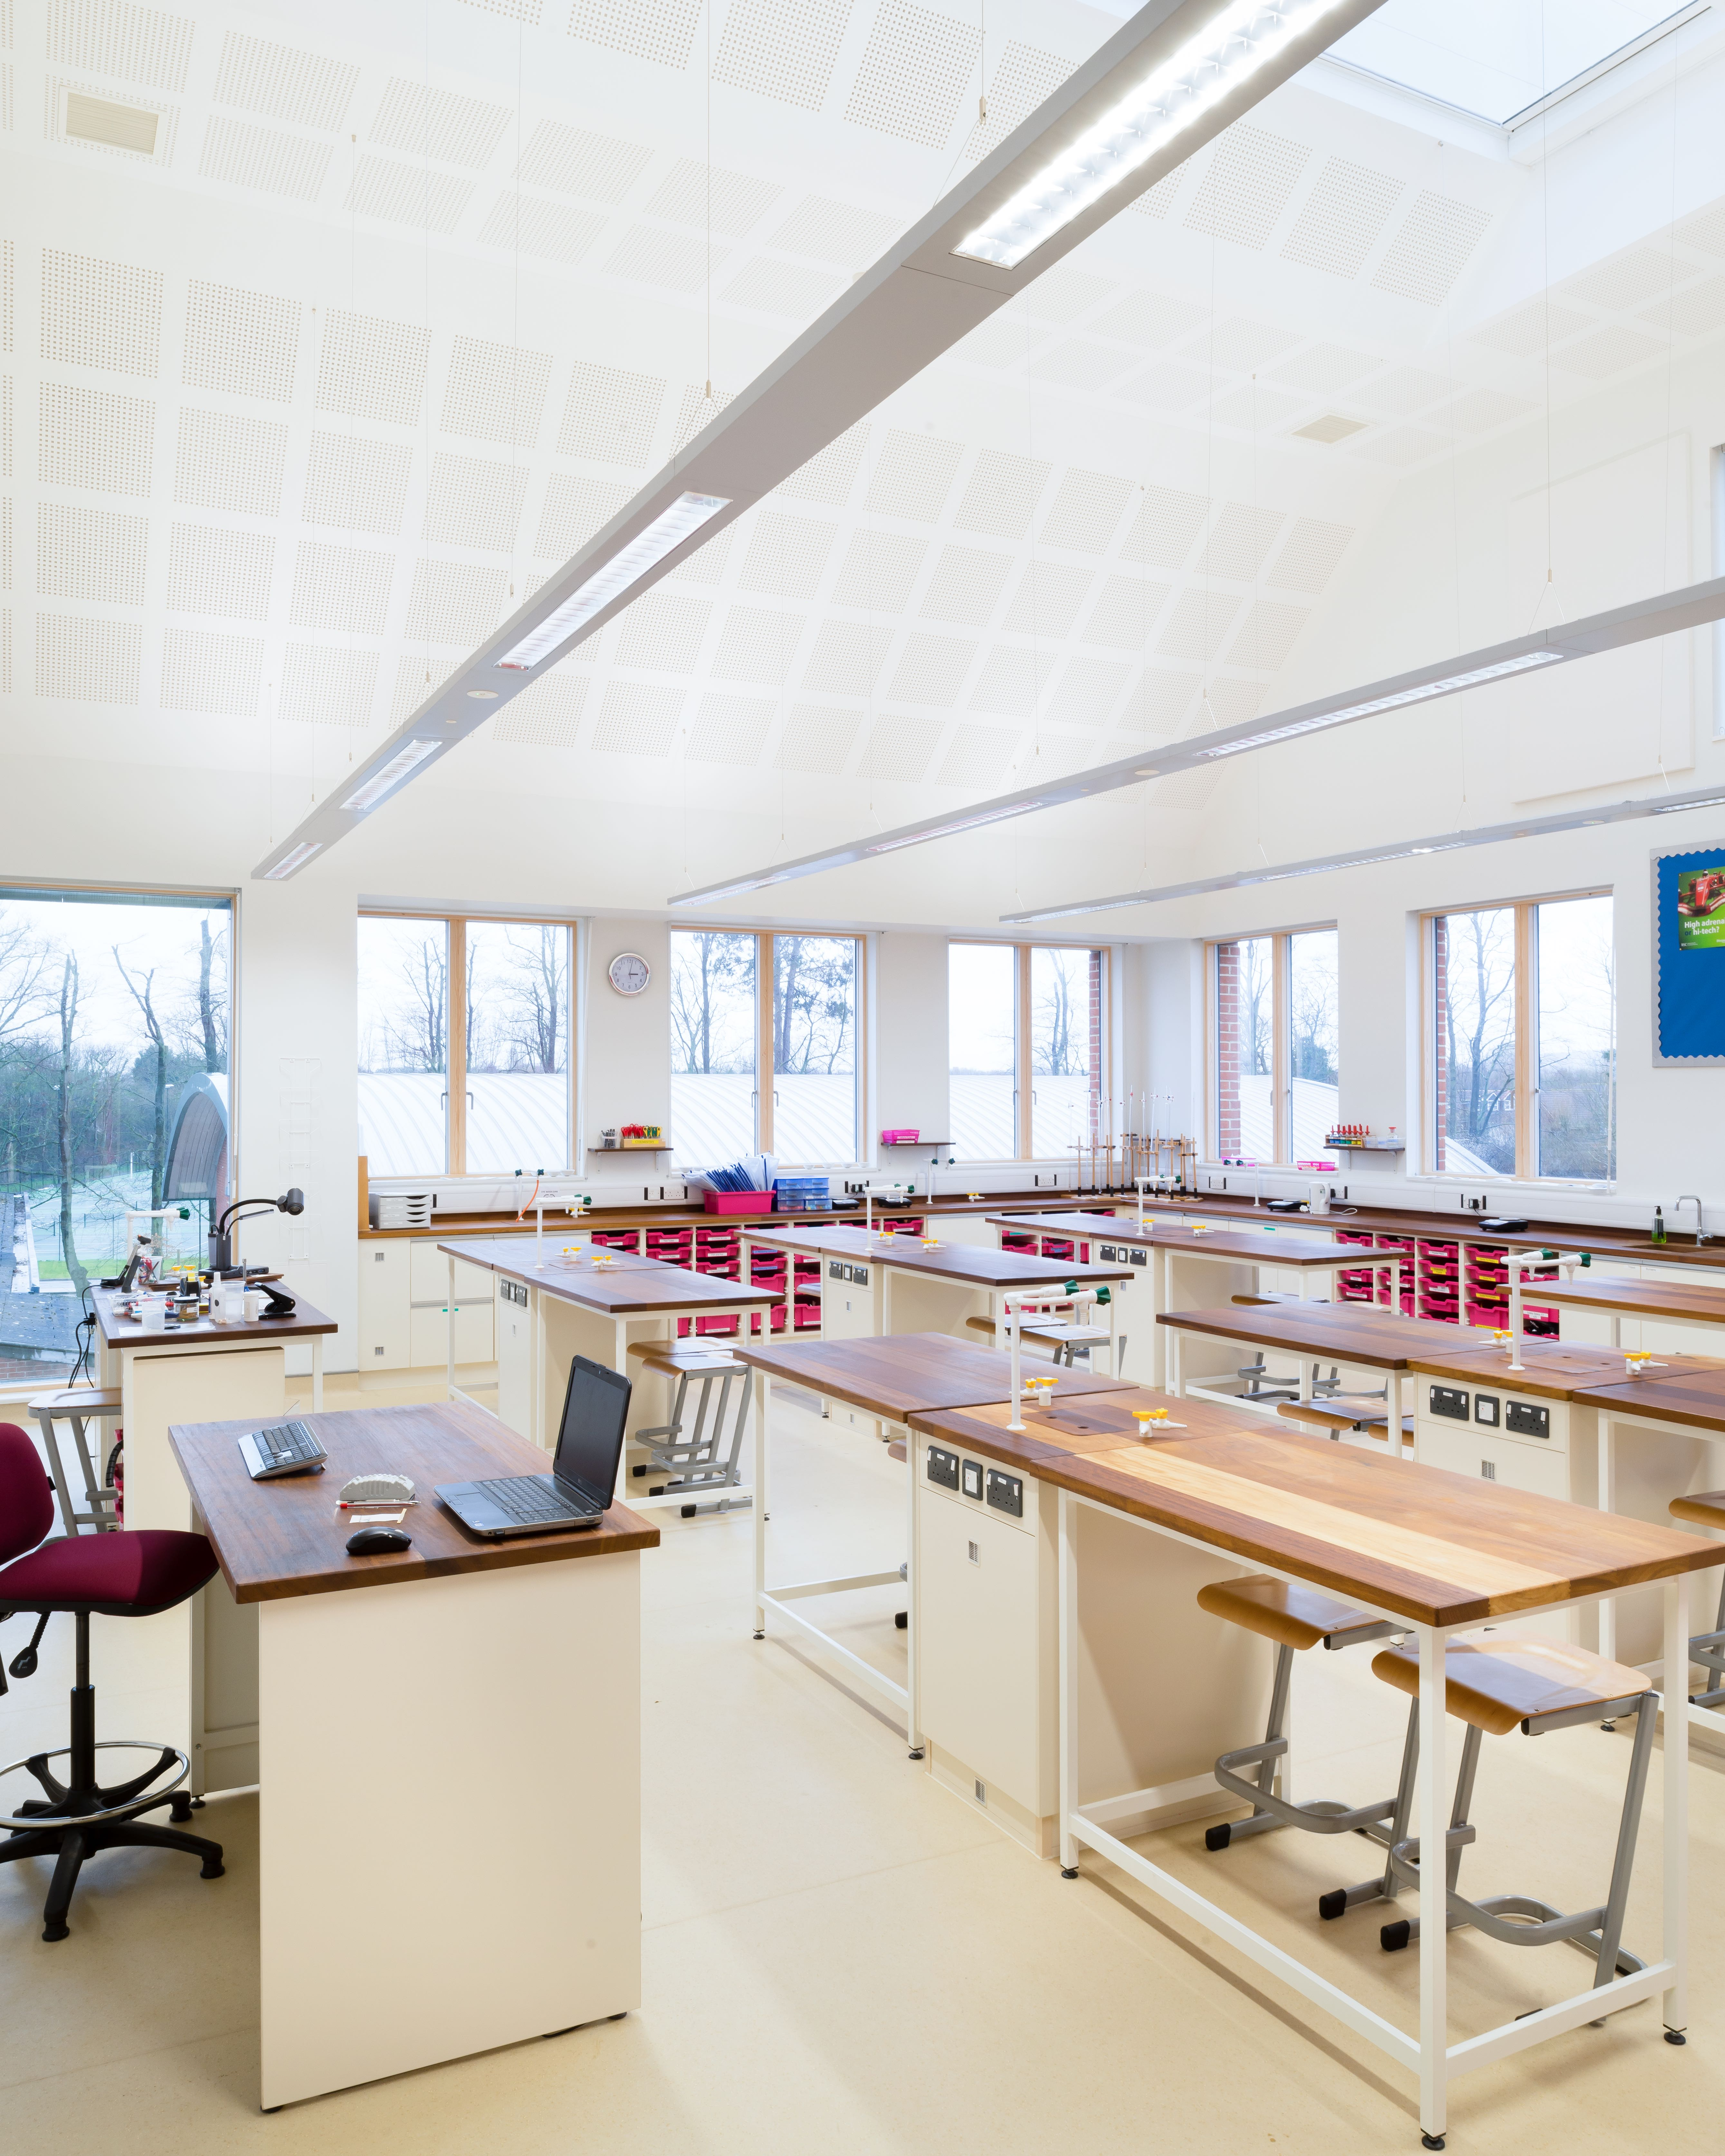 B4E features St Helen & St Katharine's newly completed Science Centre